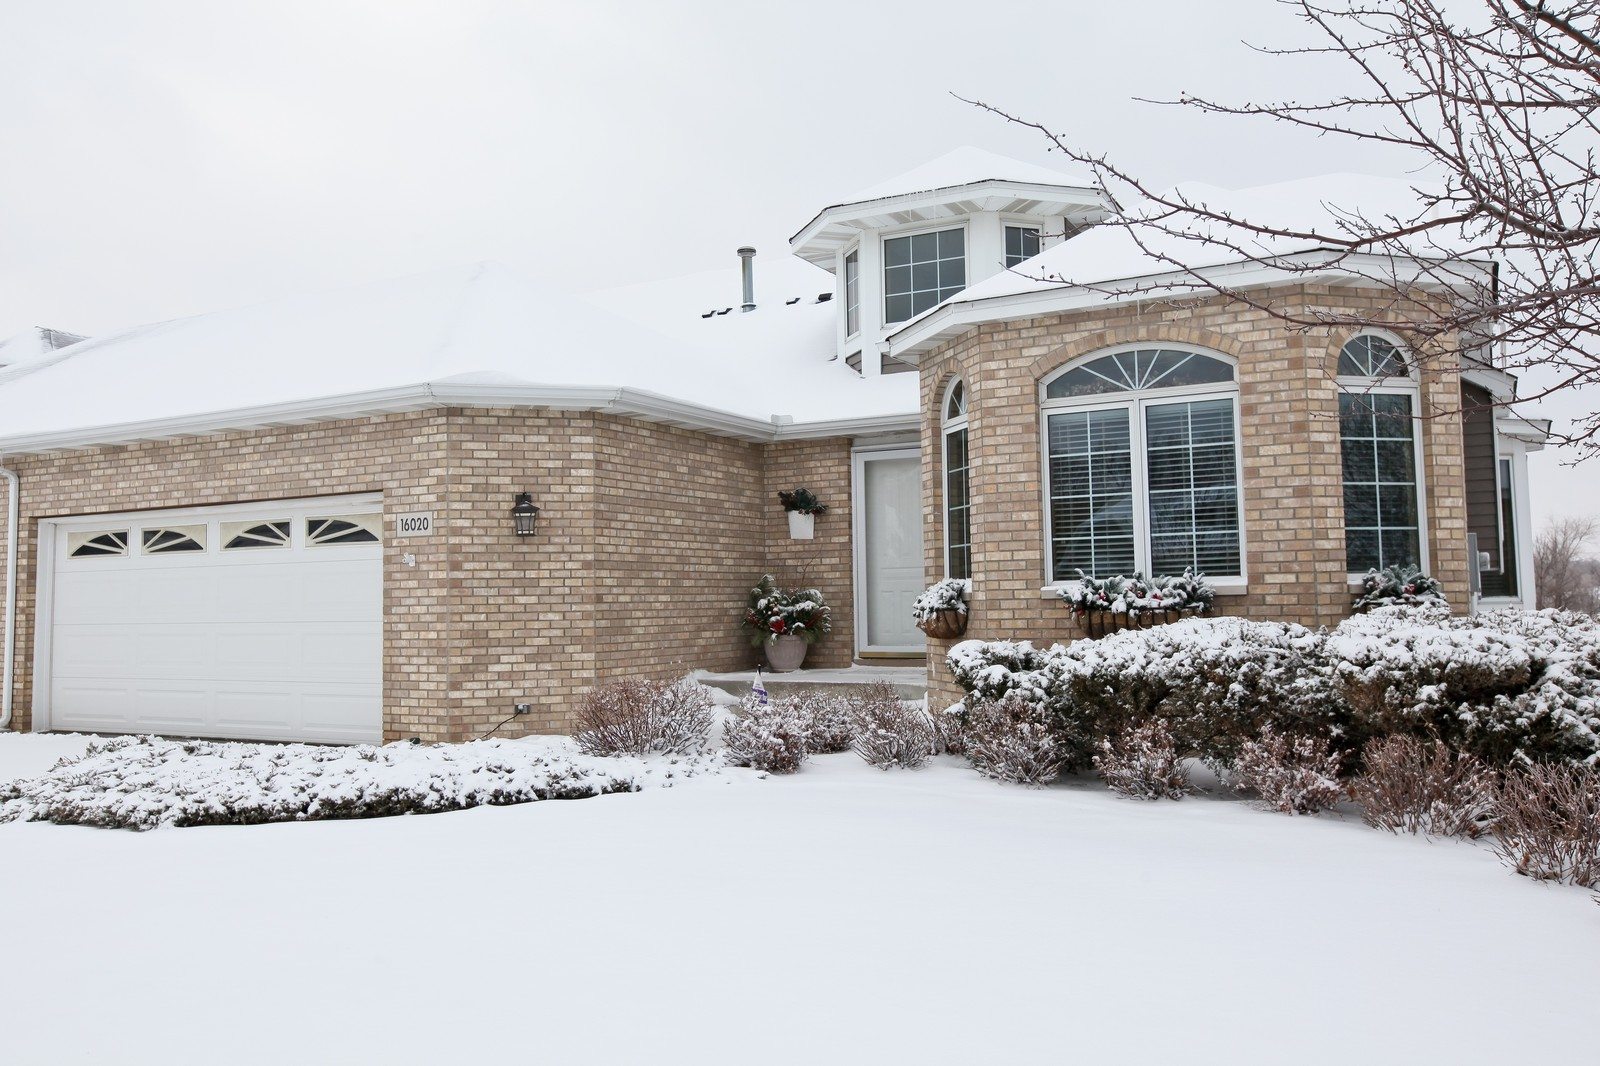 Real Estate Photography - 16020 38th Ave North, Plymouth, MN, 55446 - Front View